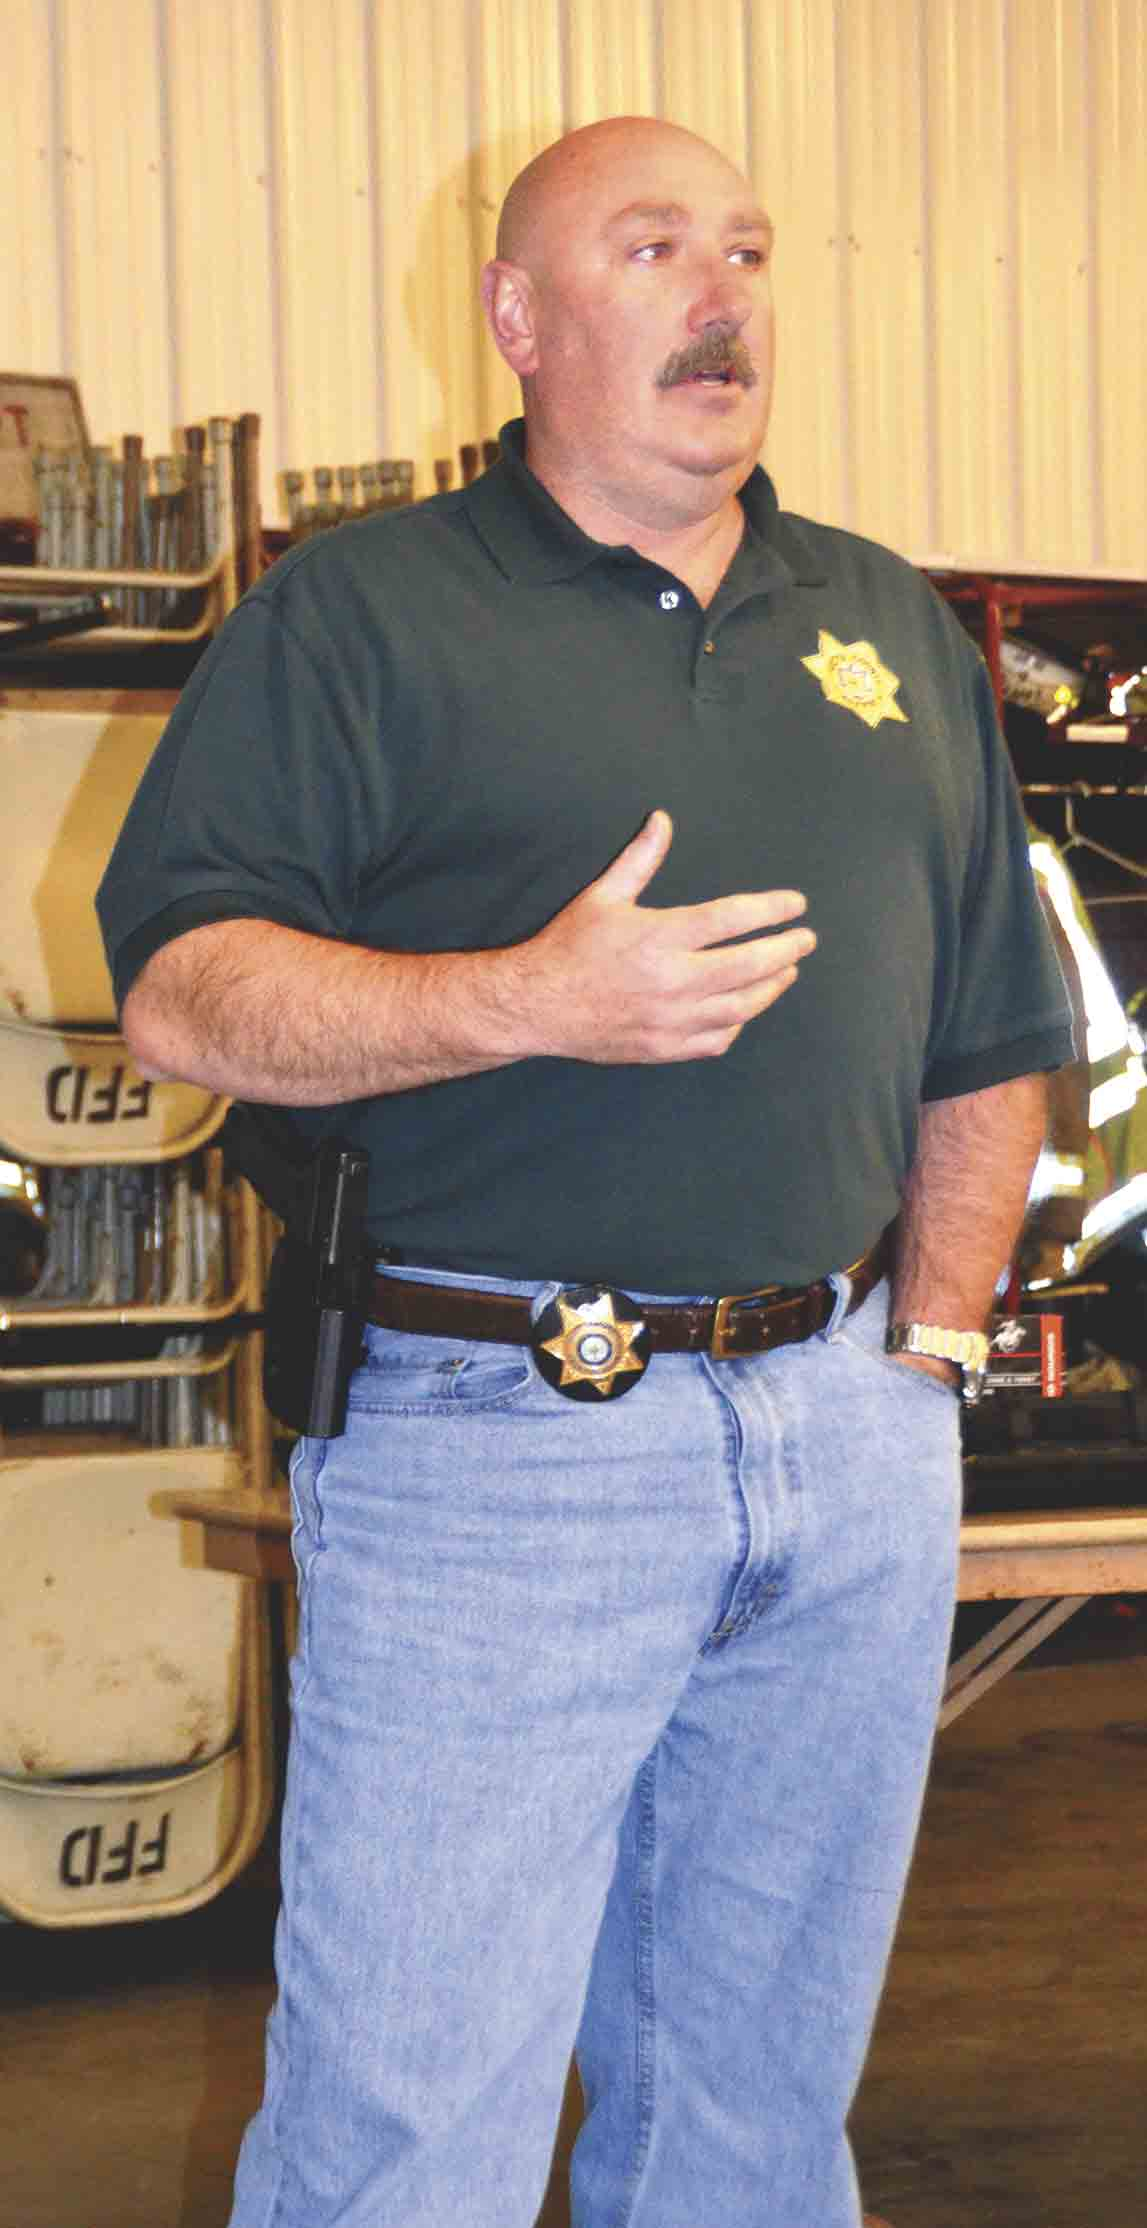 im Davis, Fayette County Sheriff's chief deputy, gave a presentation on Wednesday, April 12, to members of the public at the Fayette Fire Department on an Oran man who was arrested last year with bomb-making material. The man had served in the U.S. military and suffered from PTSD....